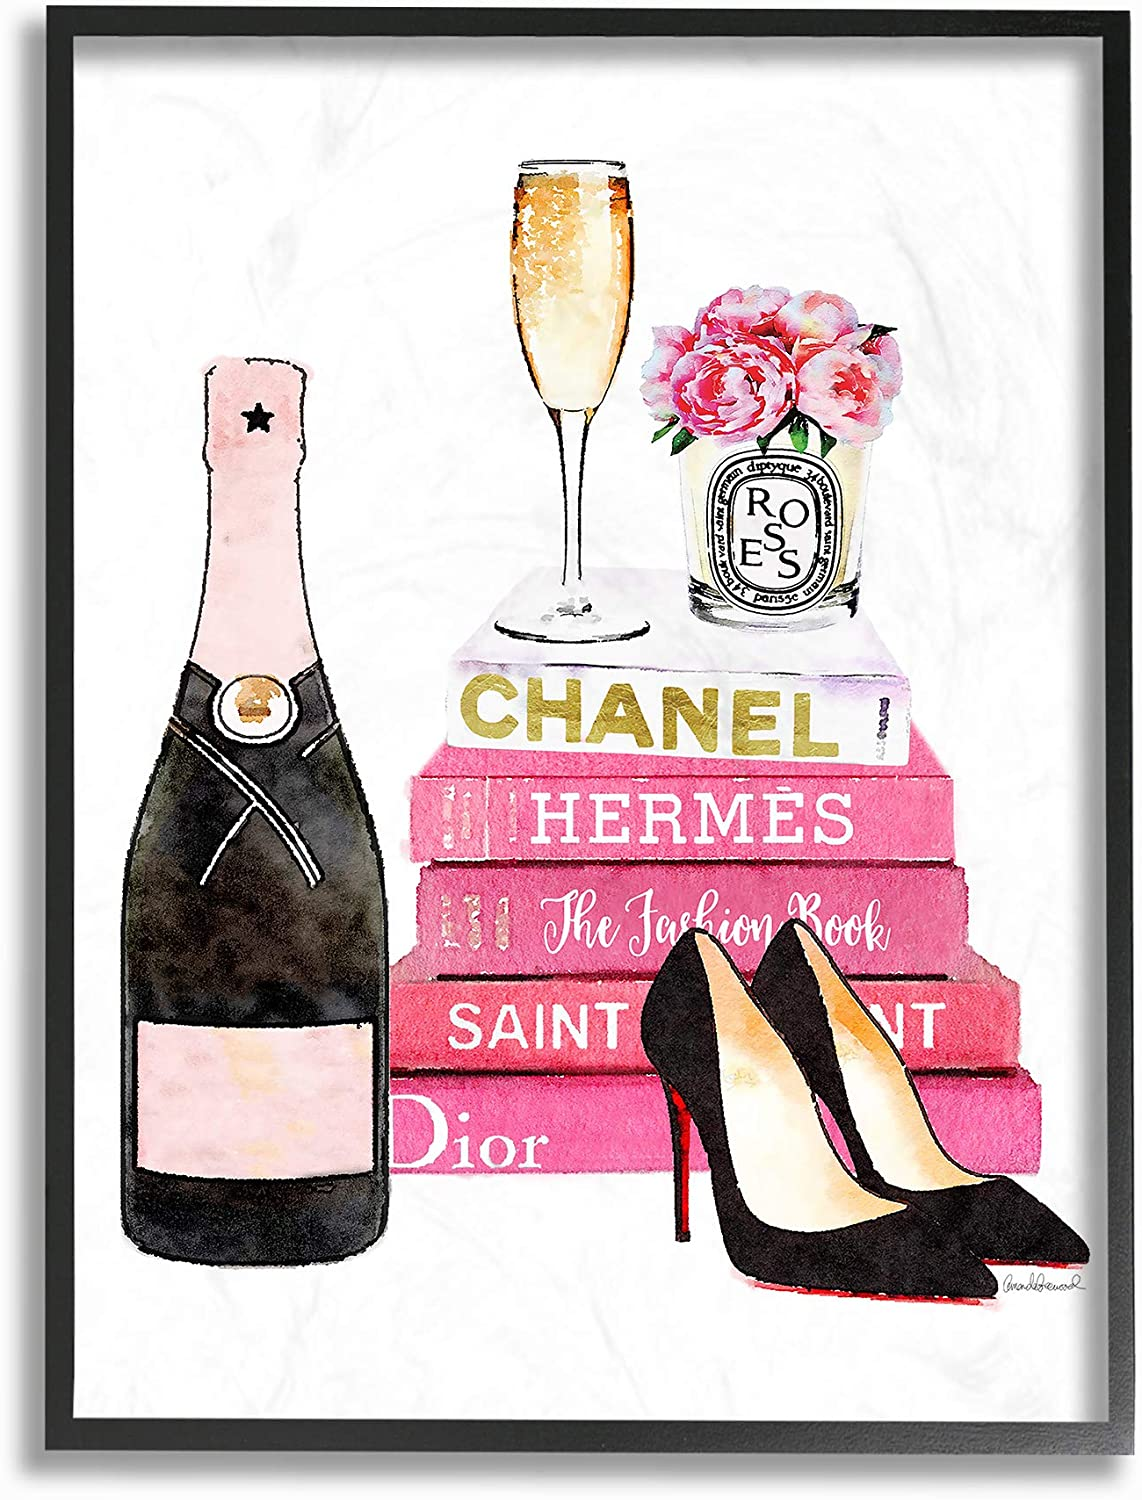 Stupell Industries Glam Pink Fashion Book Champagne Hells and Flowers Framed Giclee Texturized Art, Proudly Made in USA